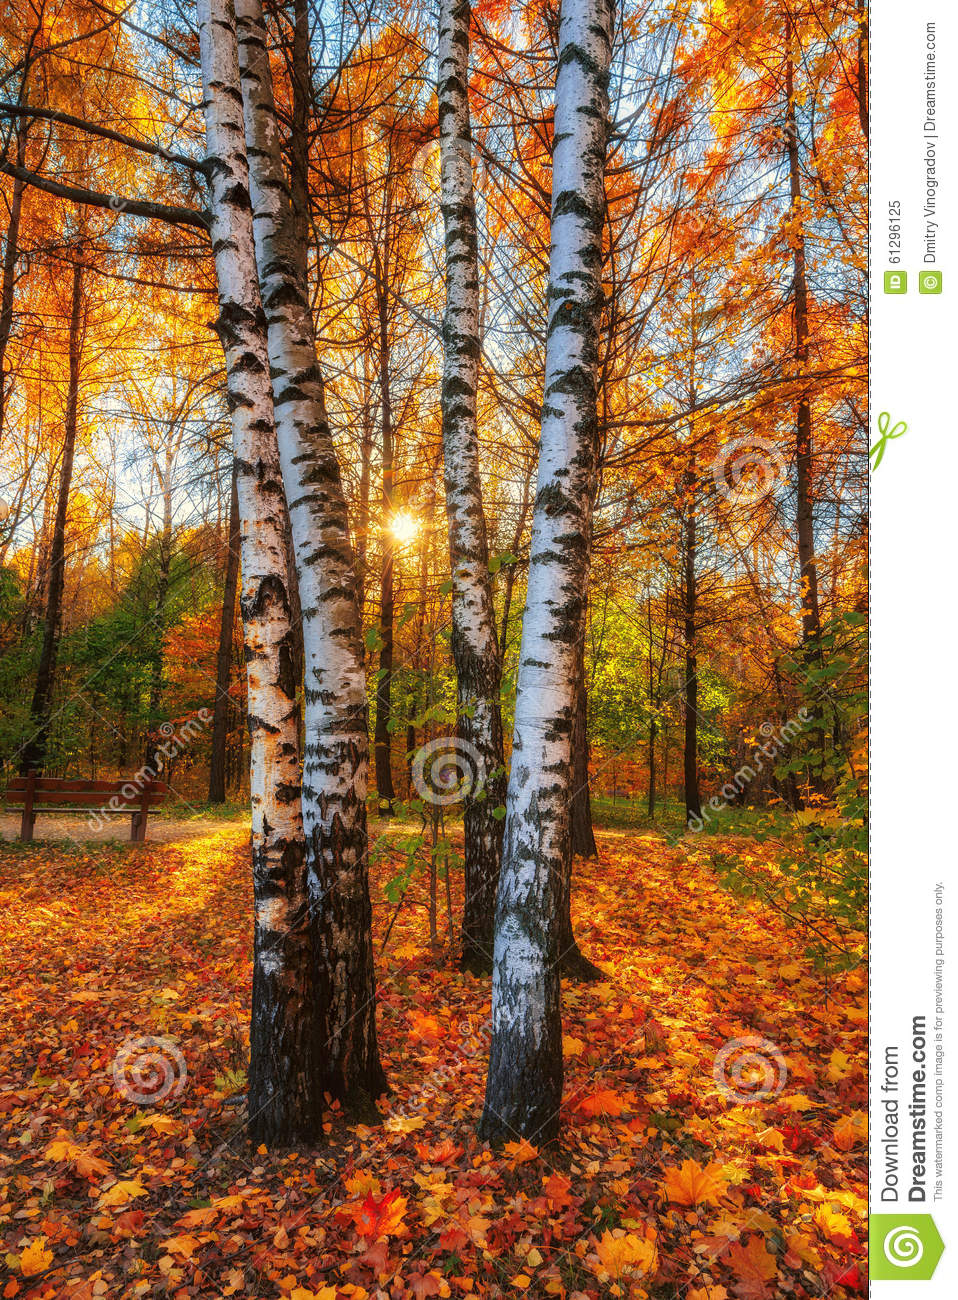 Abstract Fall Wallpaper Beautiful Autumn Morning In The Park With Soft Golden